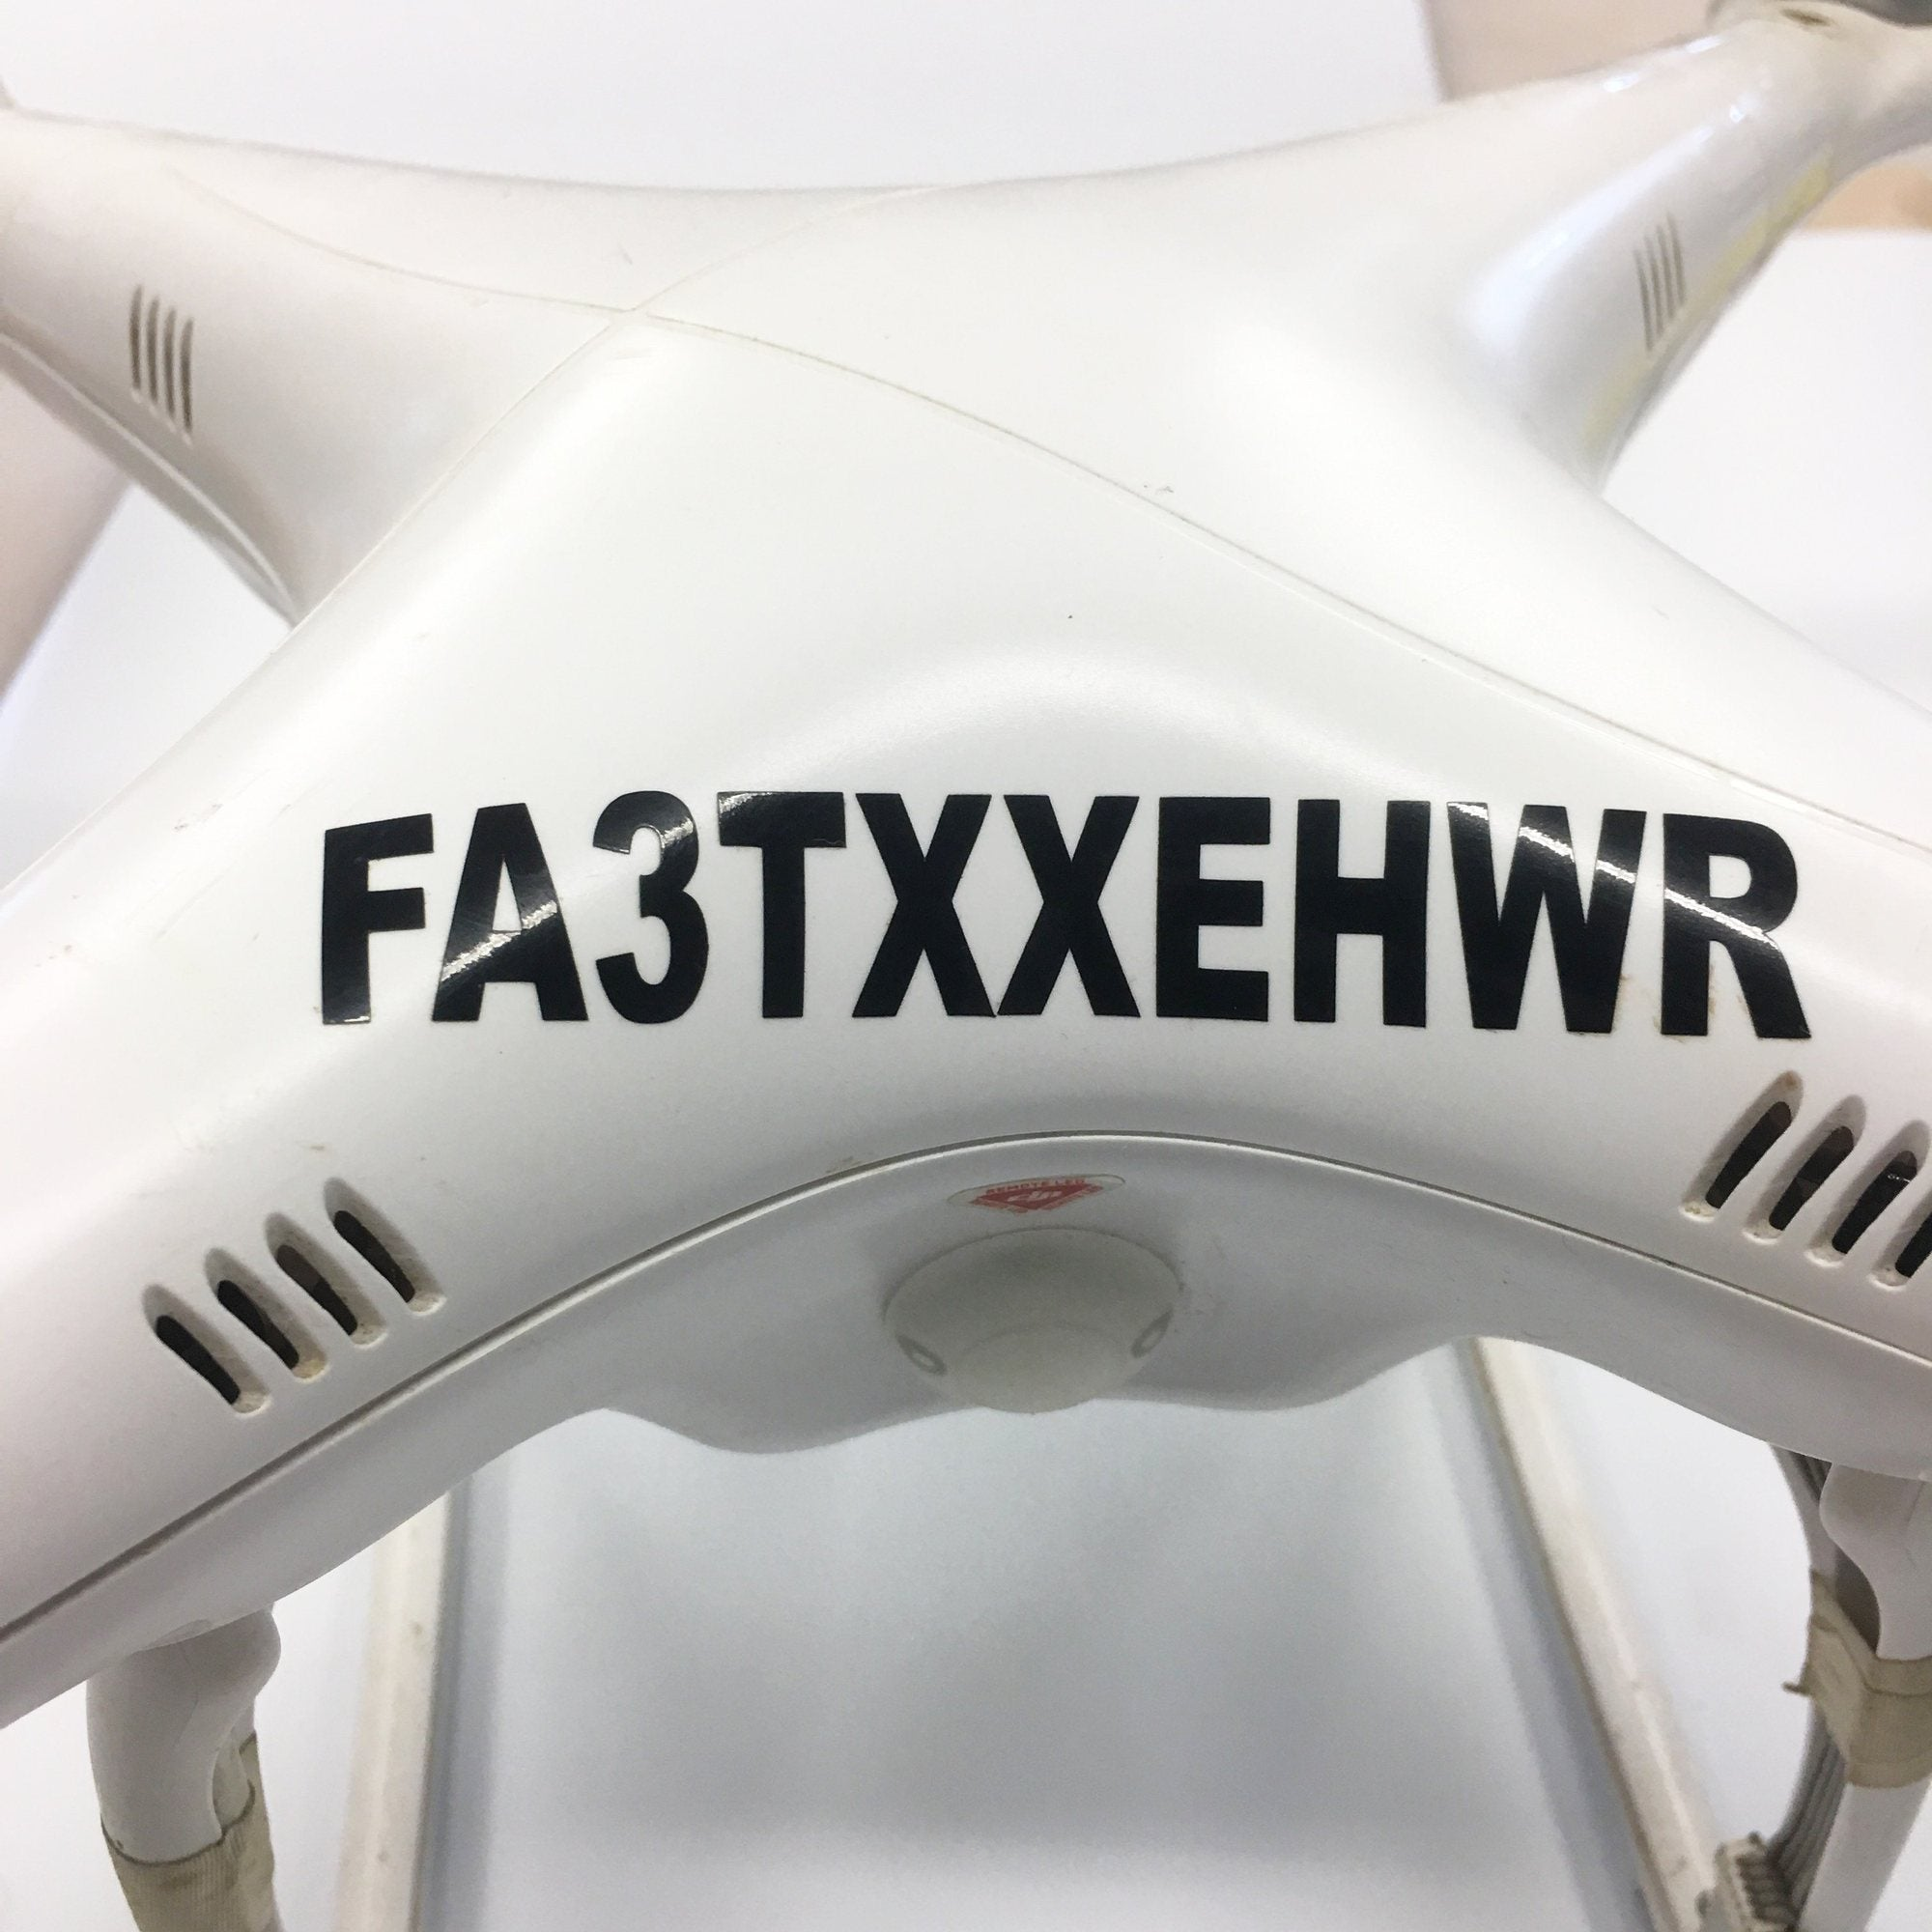 Drone Registration Number Stickers for FAA Compliance